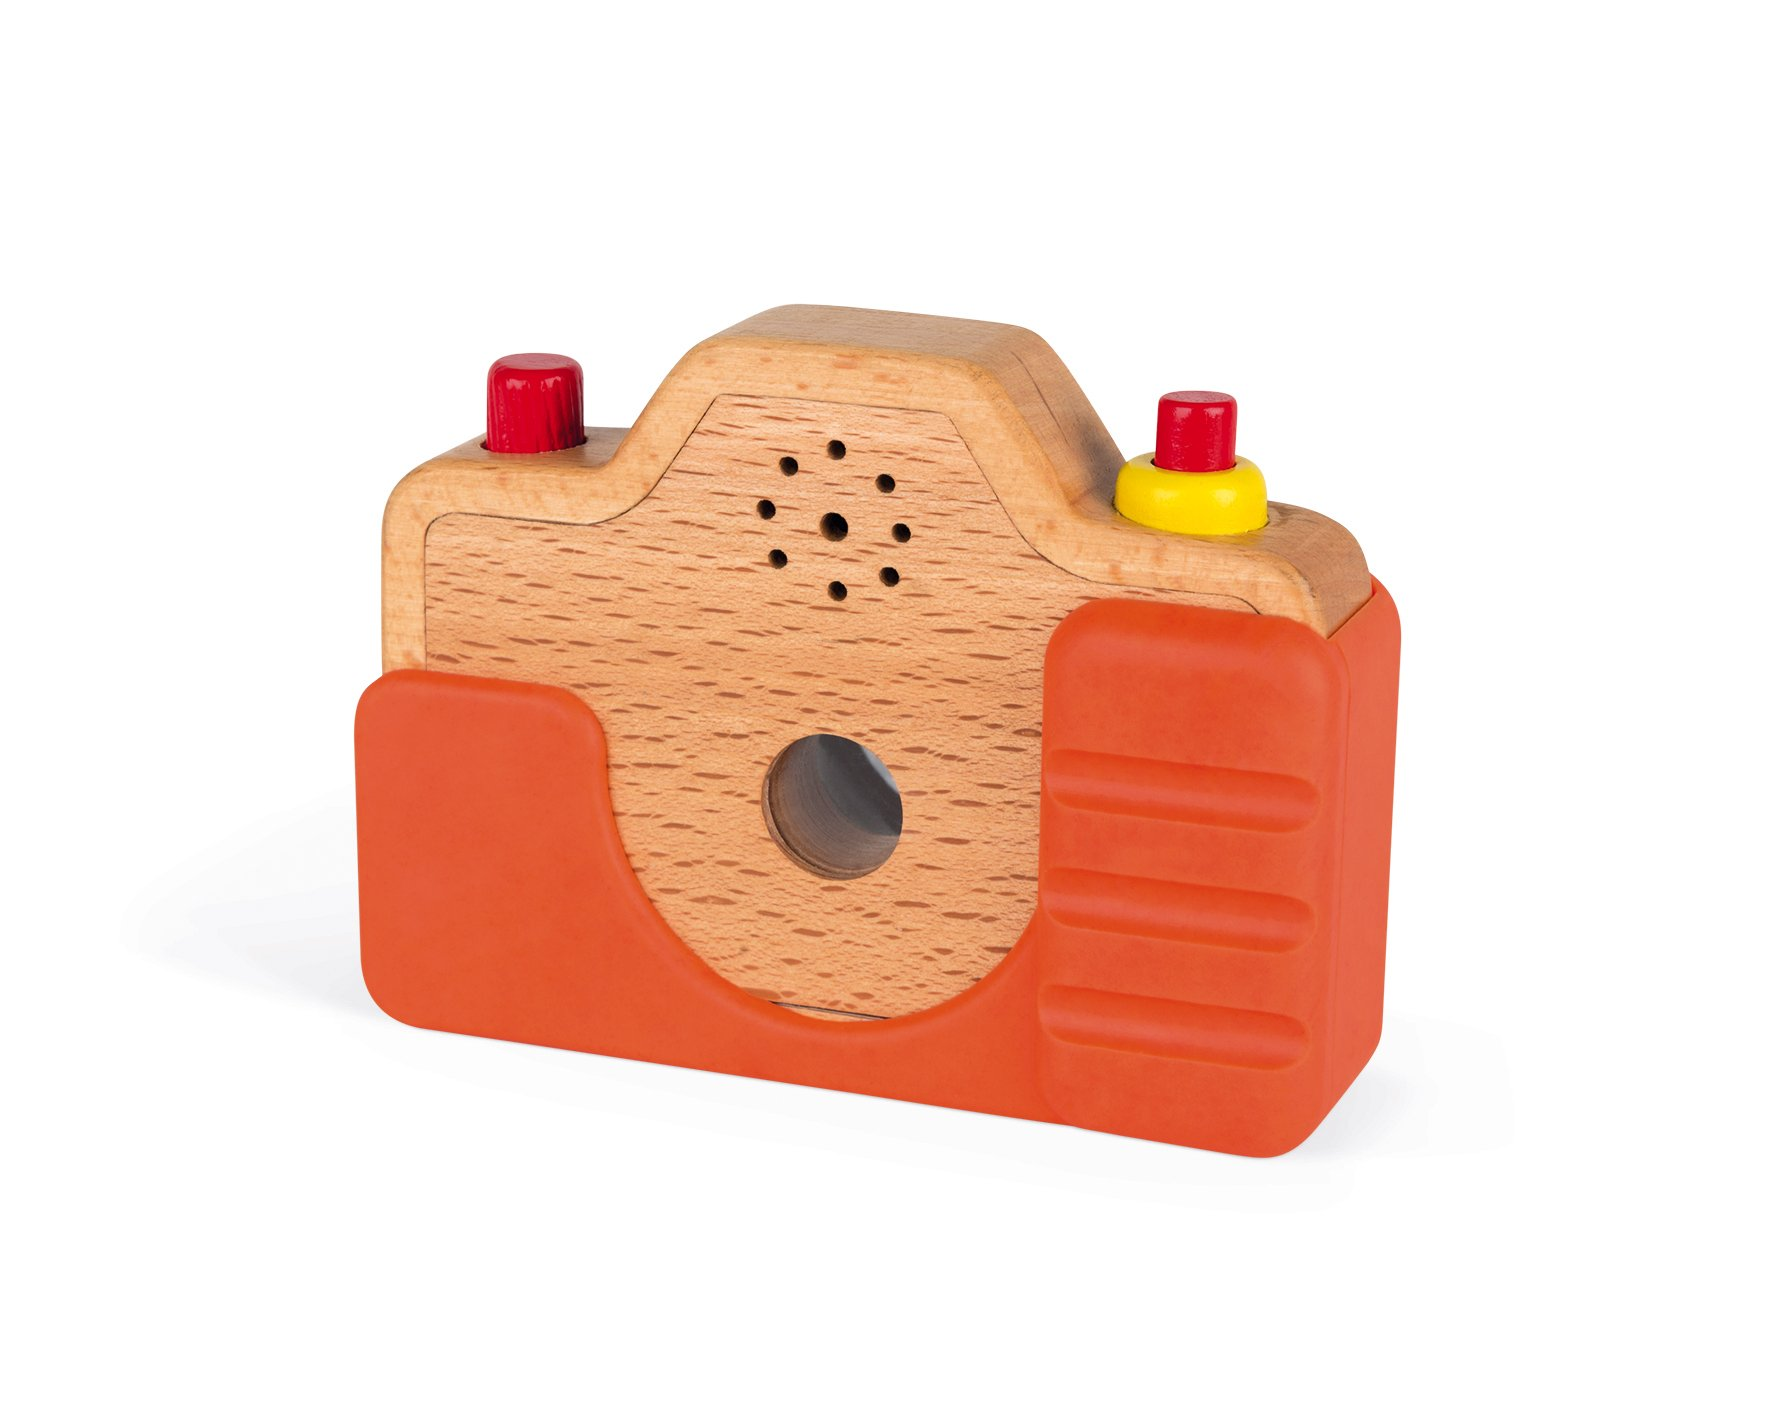 Janod Wooden Interactive Sound Camera Toy by Janod (Image #8)